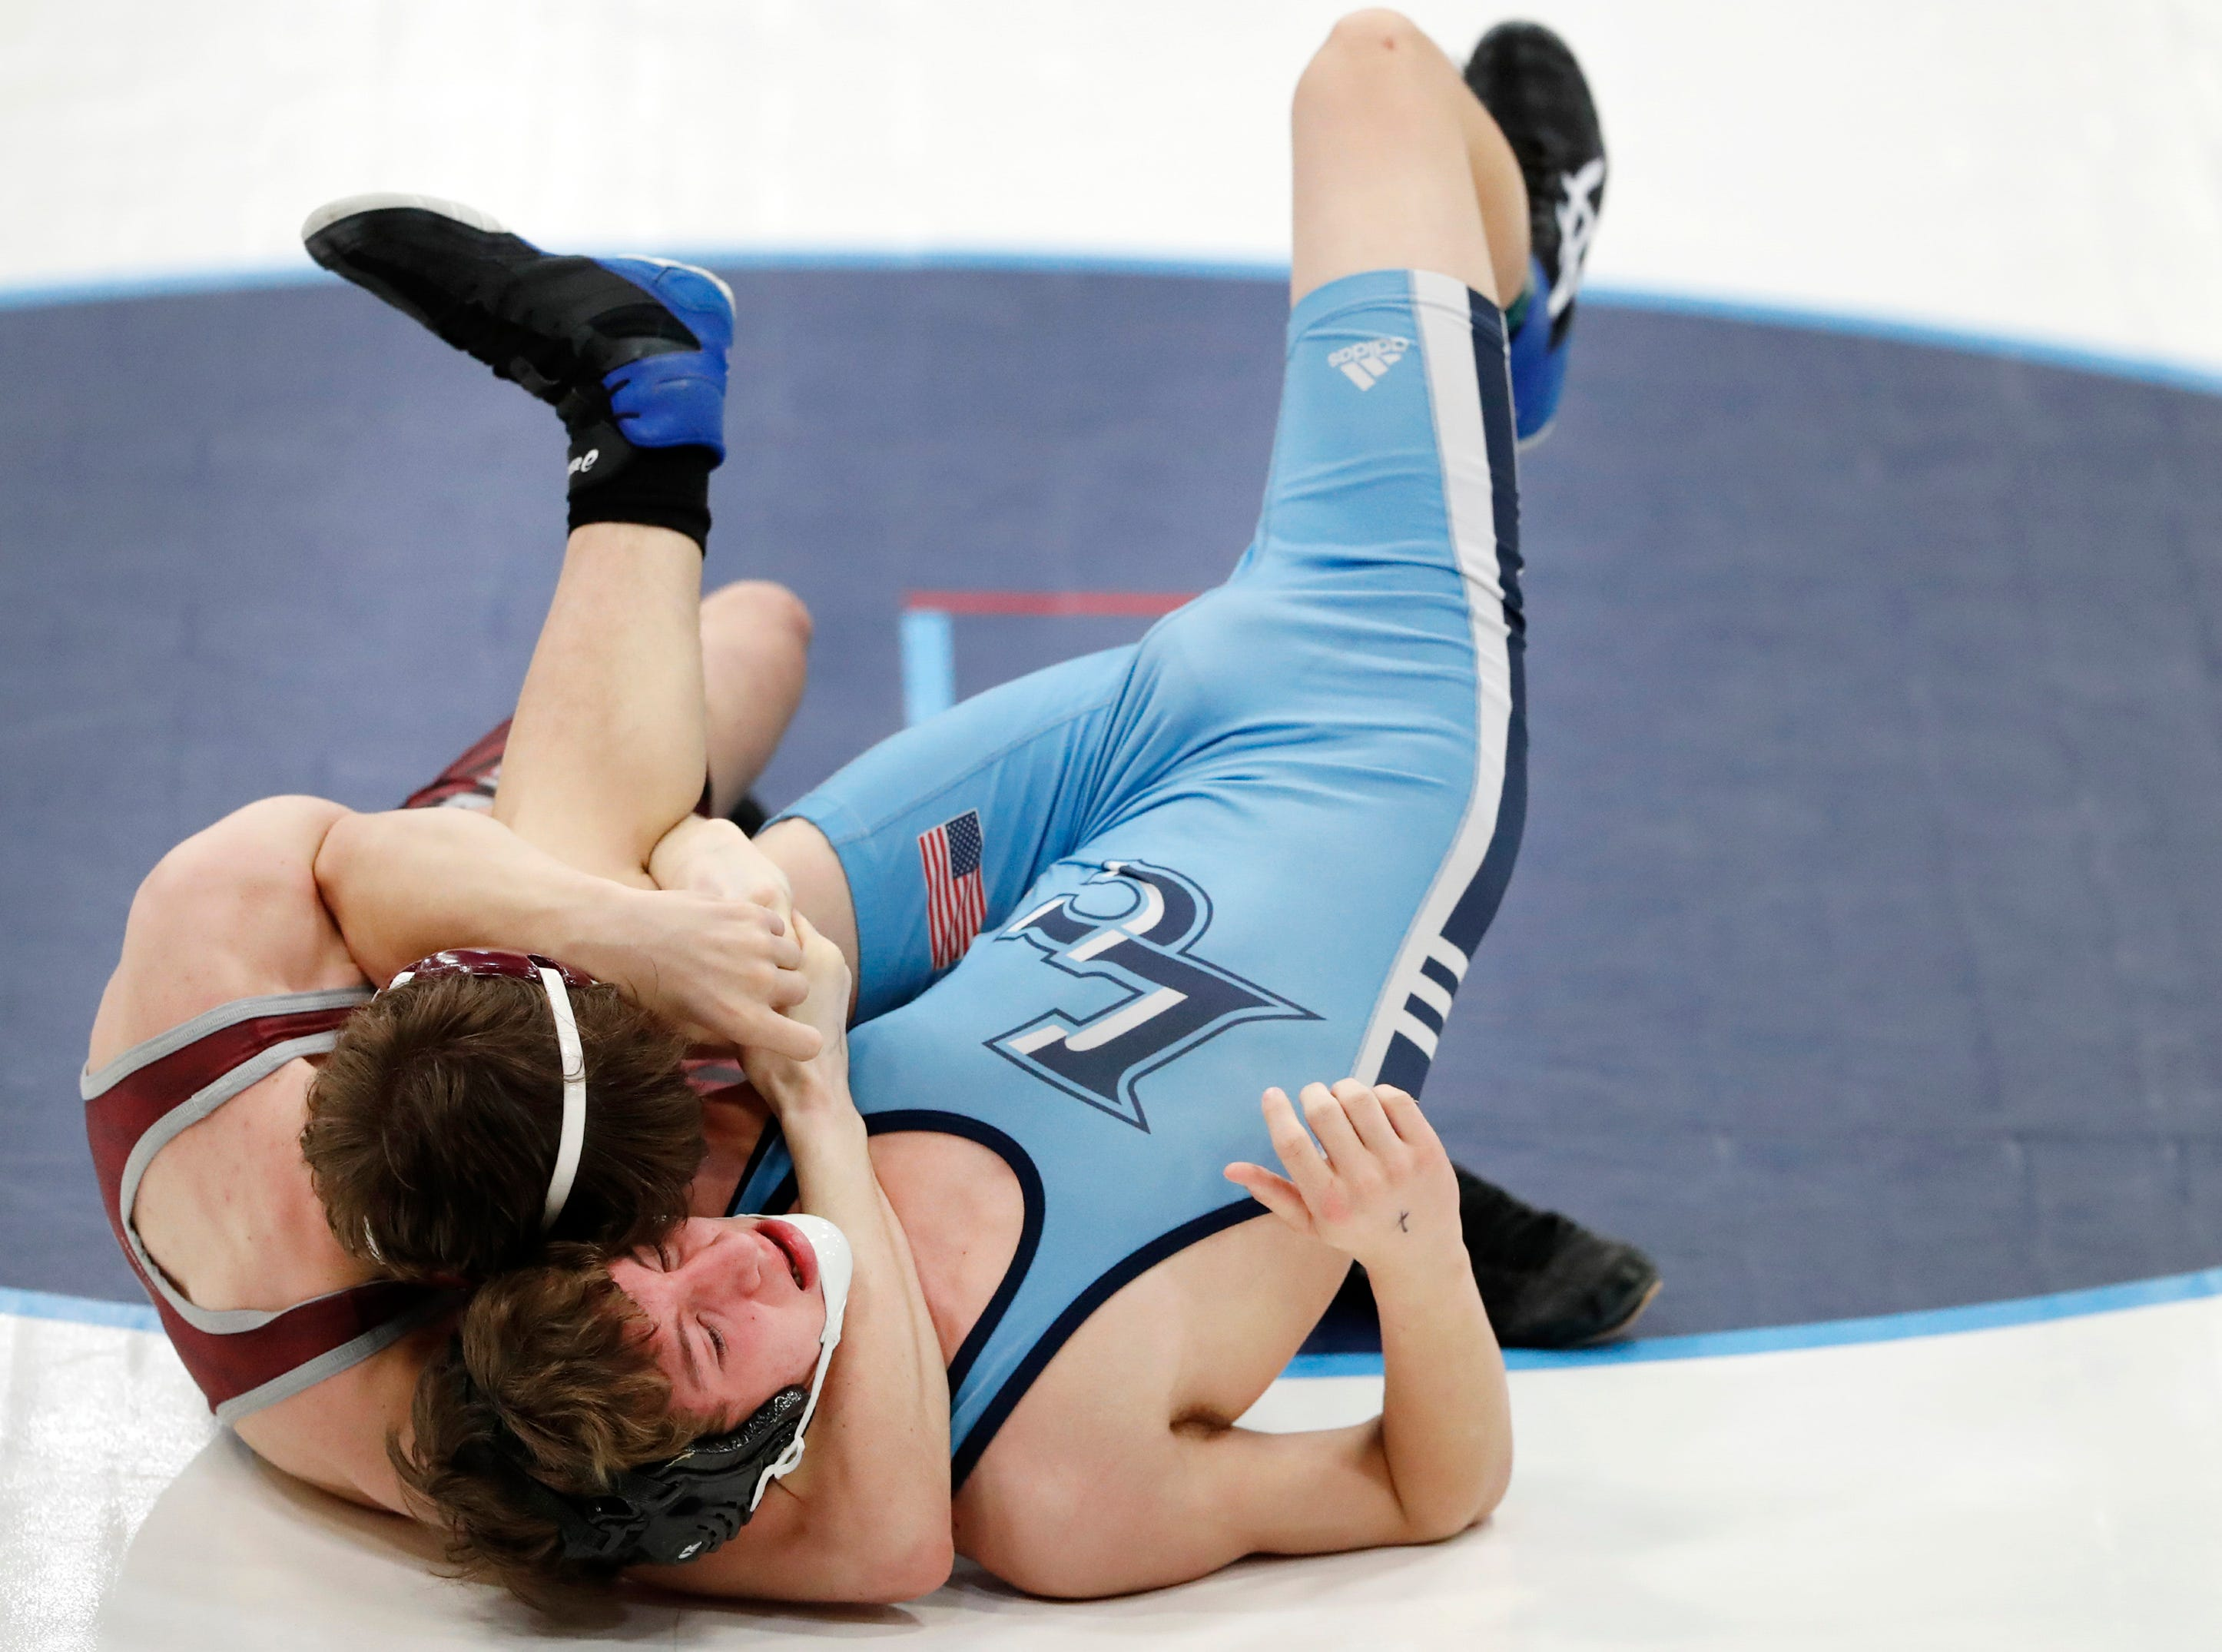 Winneconne's Nick Braun pins Little Chute's Devin Stanelle in the first round of their Division 2 wrestling regional Saturday Feb. 9, 2019, in Little Chute, Wis.